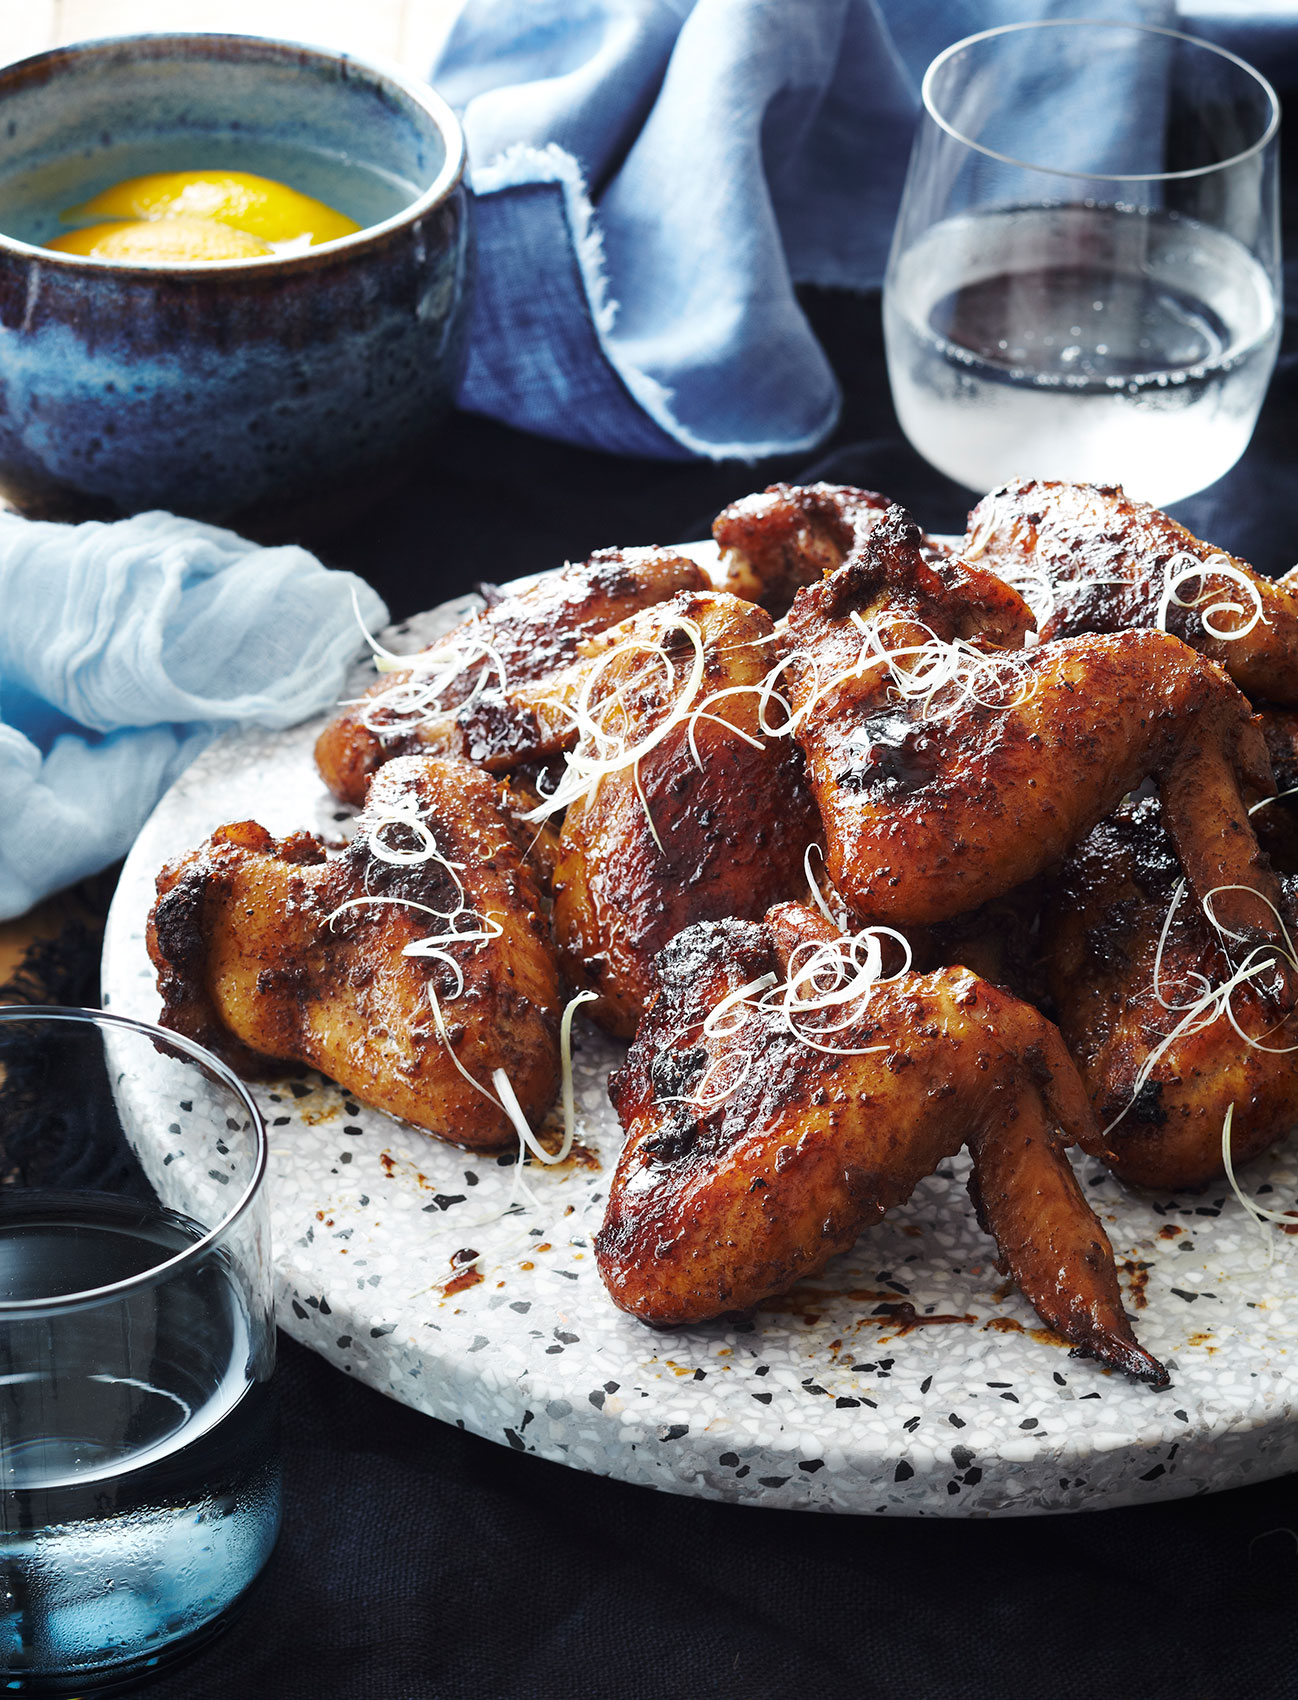 HG246_SachiesKitchen_ChickenWIngs_03